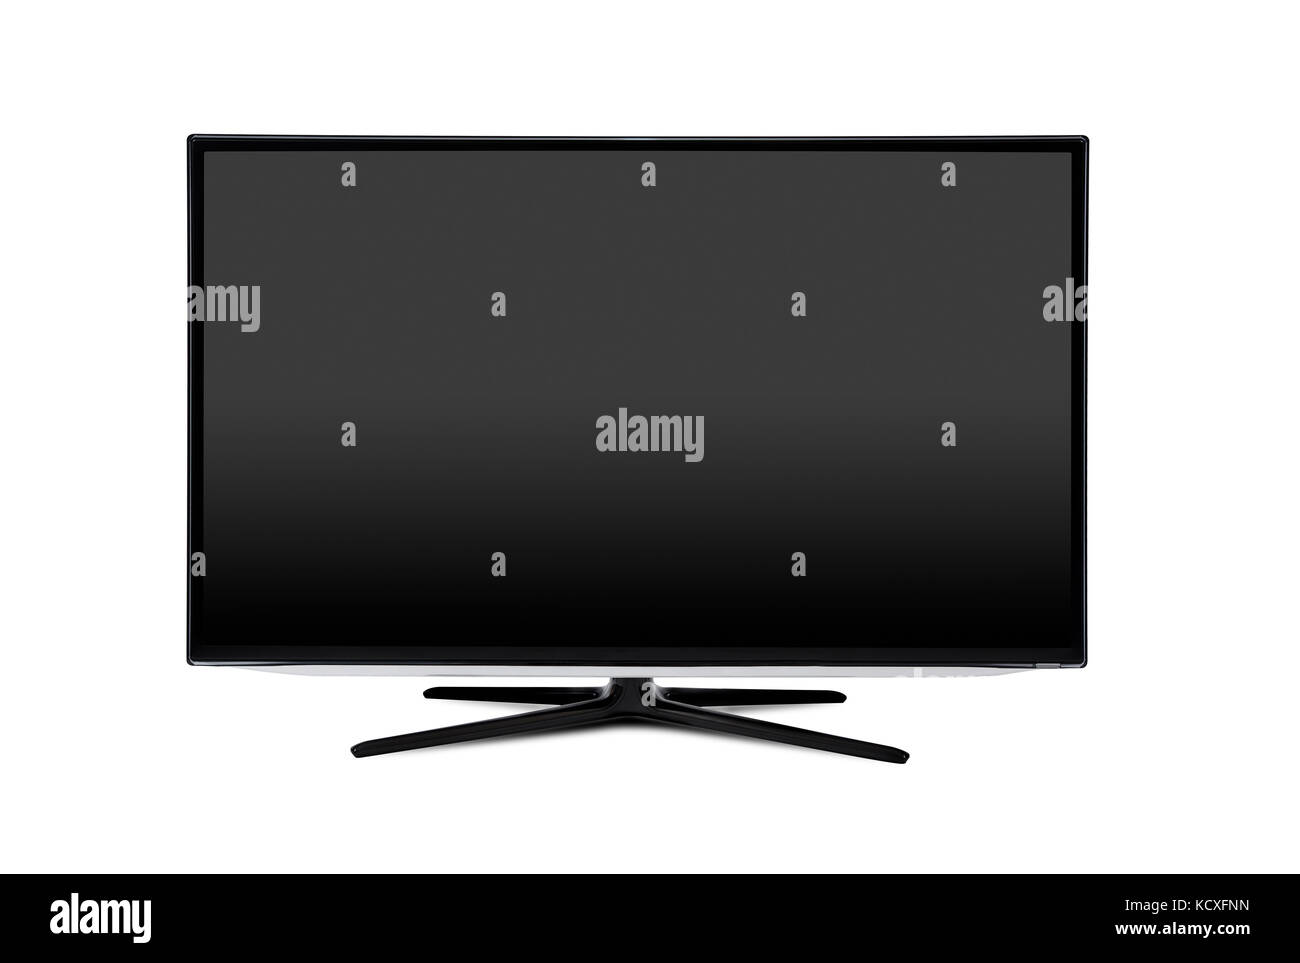 Television Tv Screen Mockup Front View Isolated Blank Screen Stock